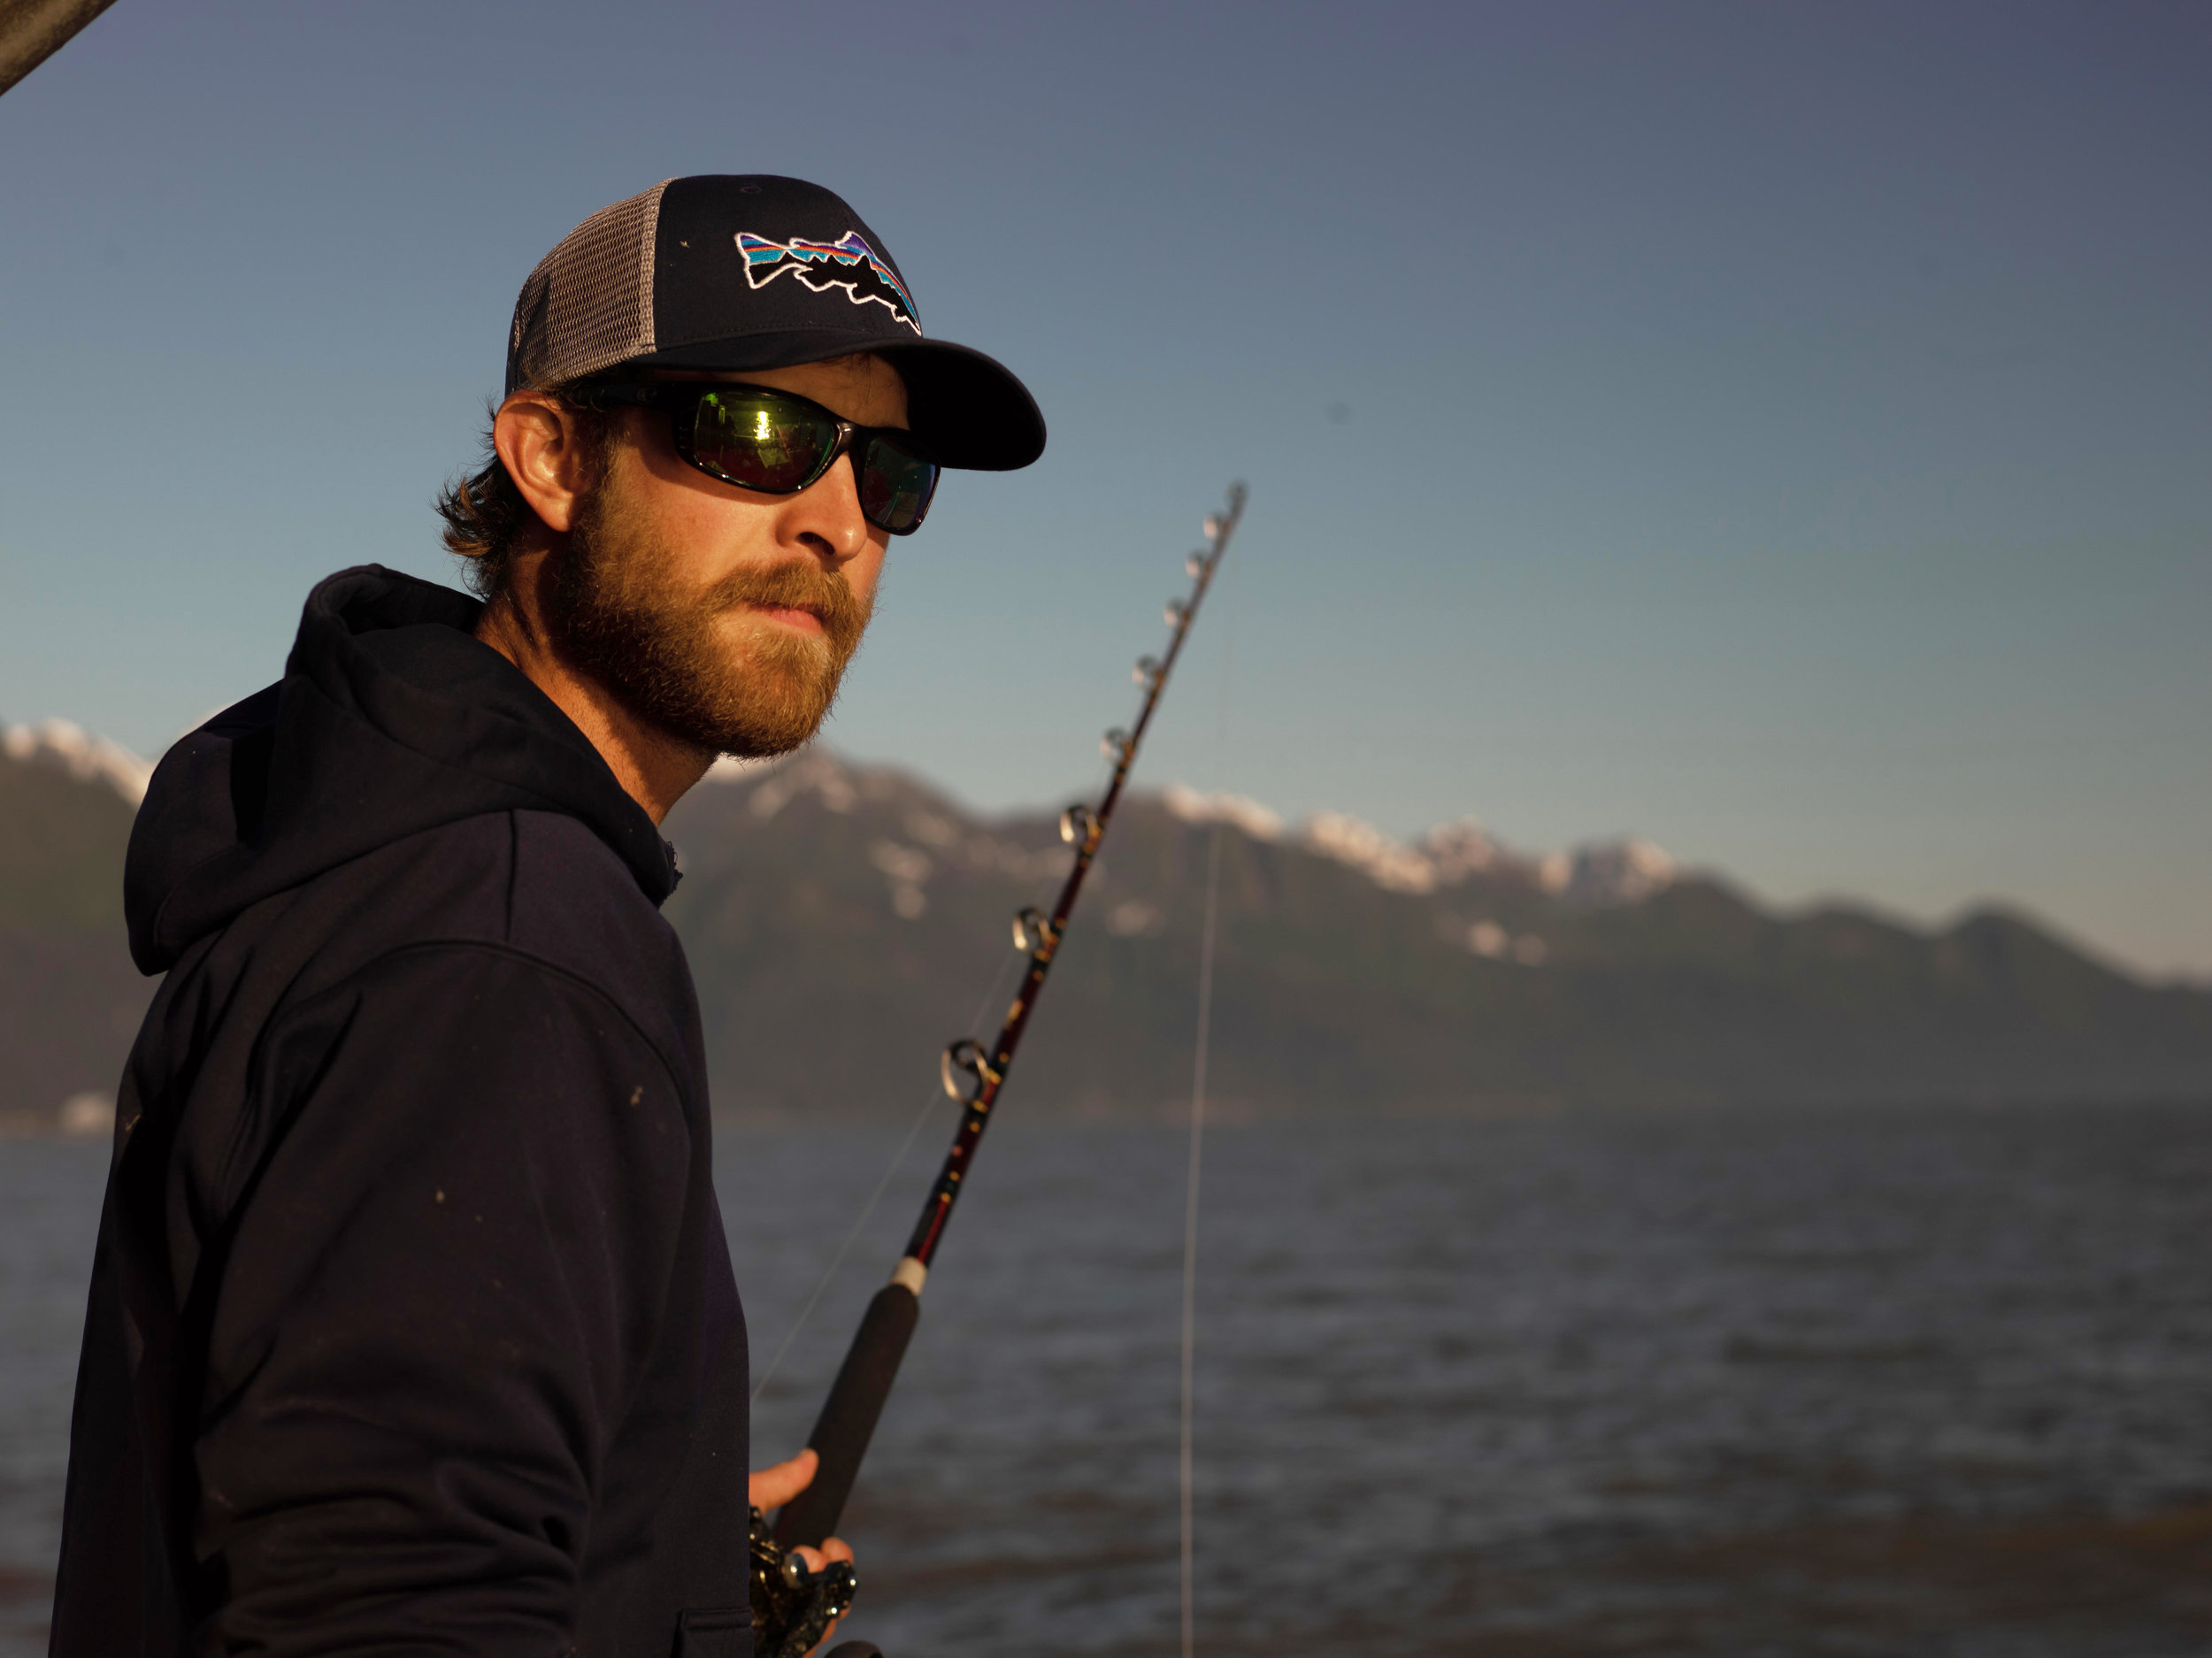 matt smith knows how to get er' done. He's a good ol' boy from texas with an immense love for fishing in alaska. He quickly worked his way up from deckhand to captain and he's been showing anglers of j-dock a great time ever since. his kindness, work ethic, and talent as a fishing guide is why we call him the... - the golden boy